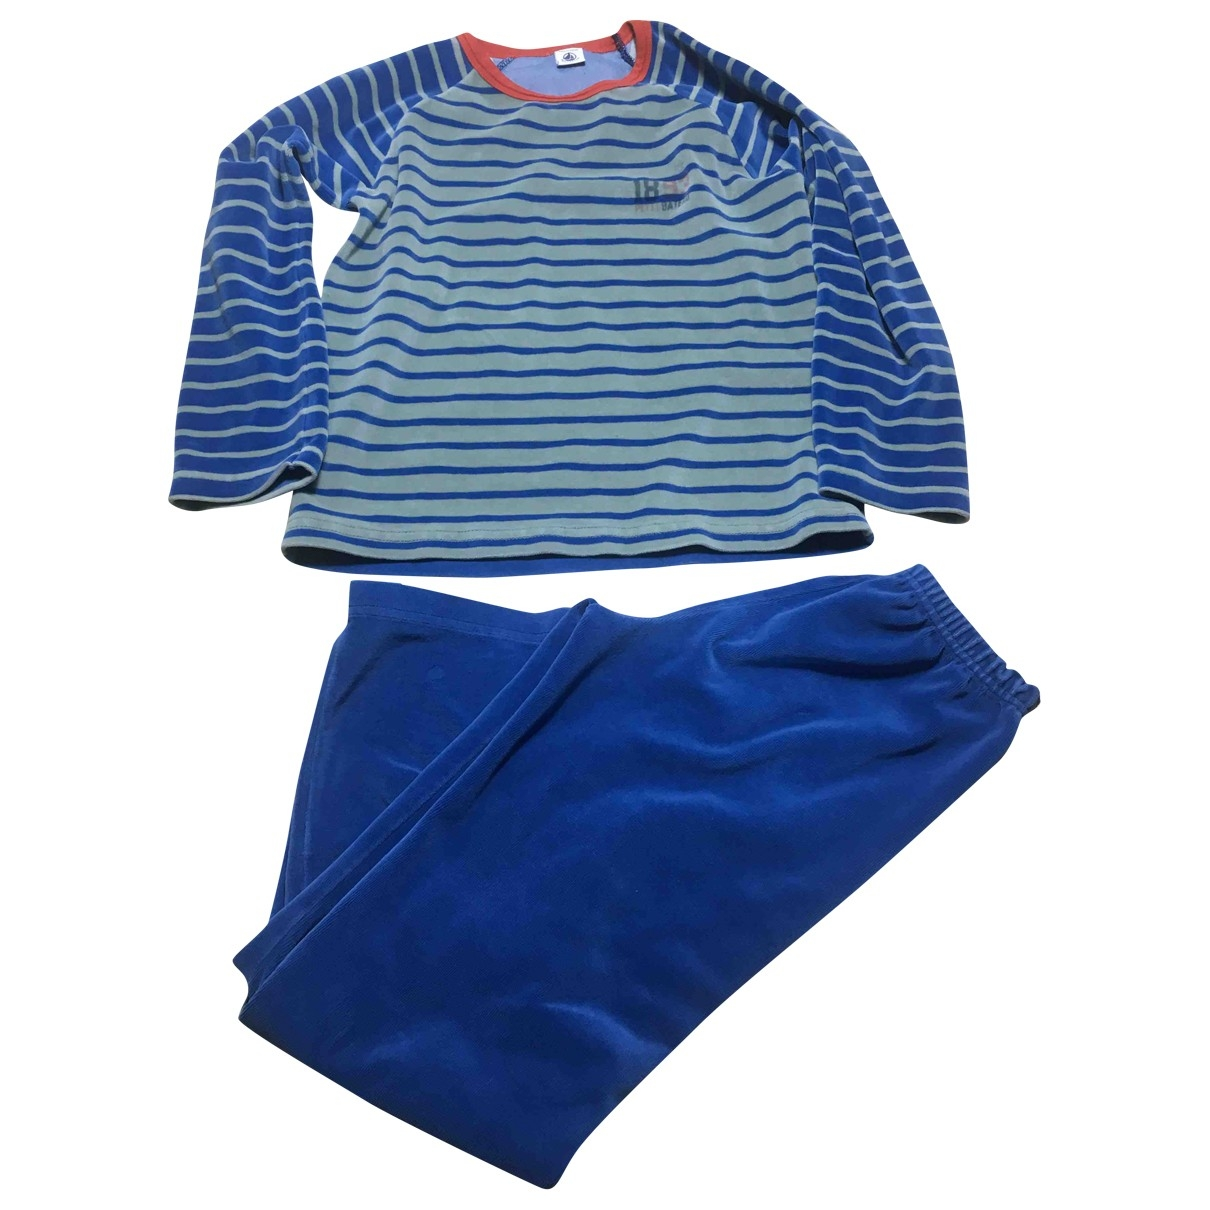 Petit Bateau \N Blue Cotton Outfits for Kids 8 years - up to 128cm FR